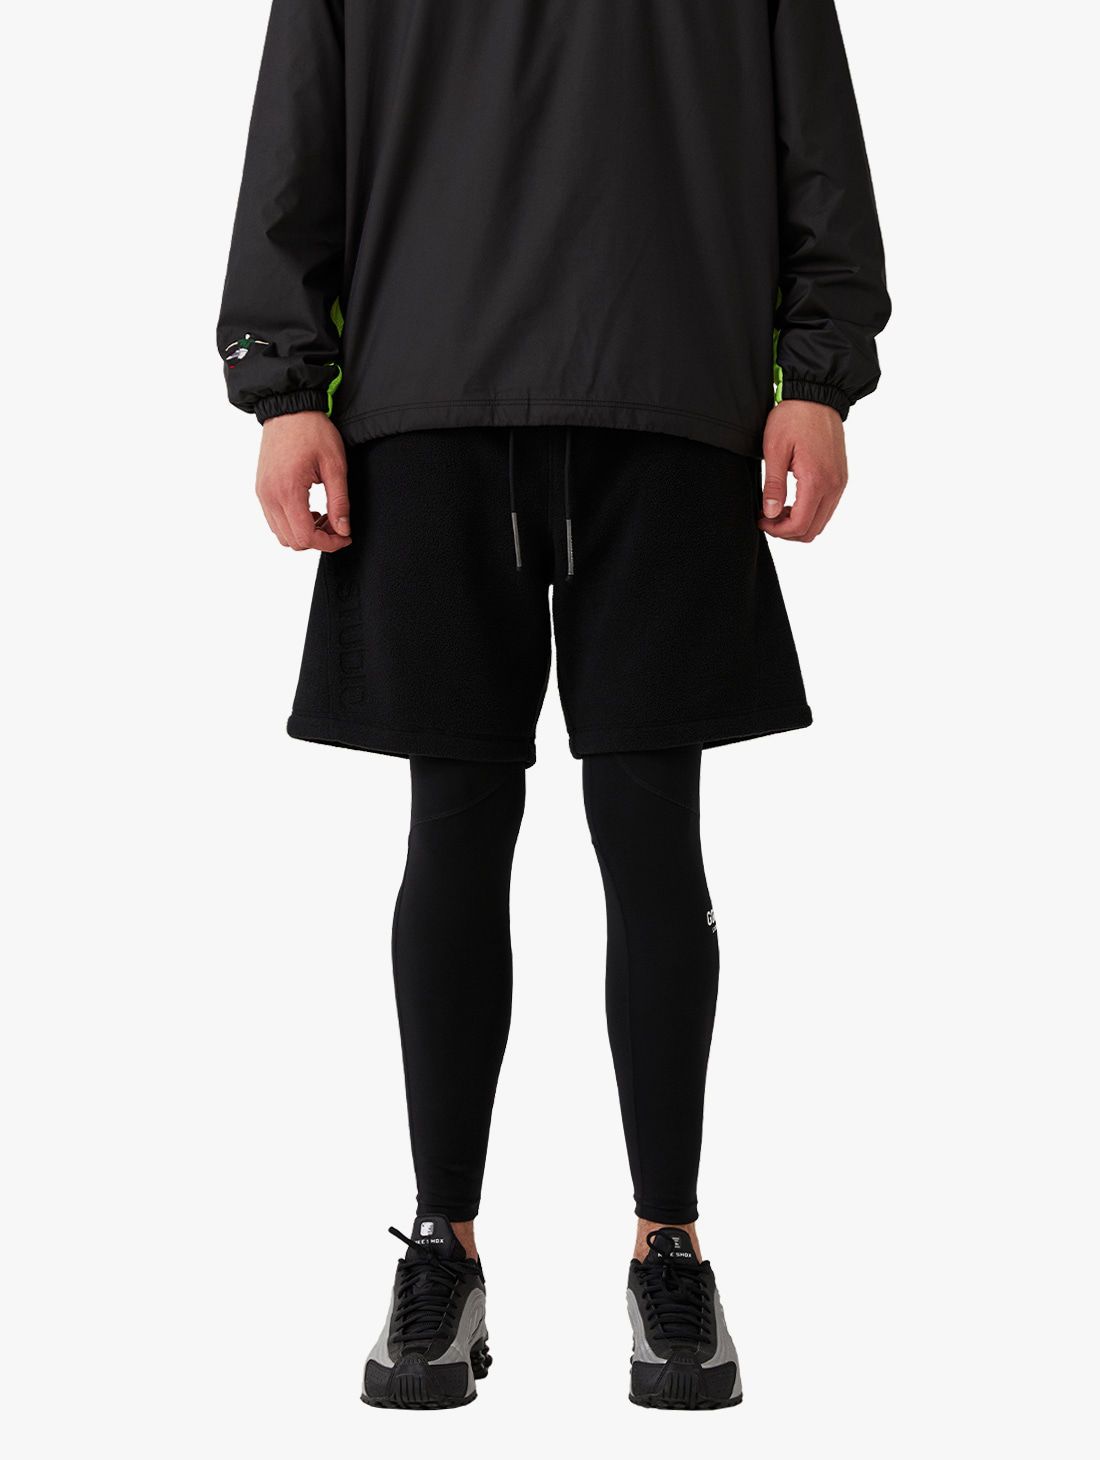 GOALSTUDIO MEN'S LEGGINGS